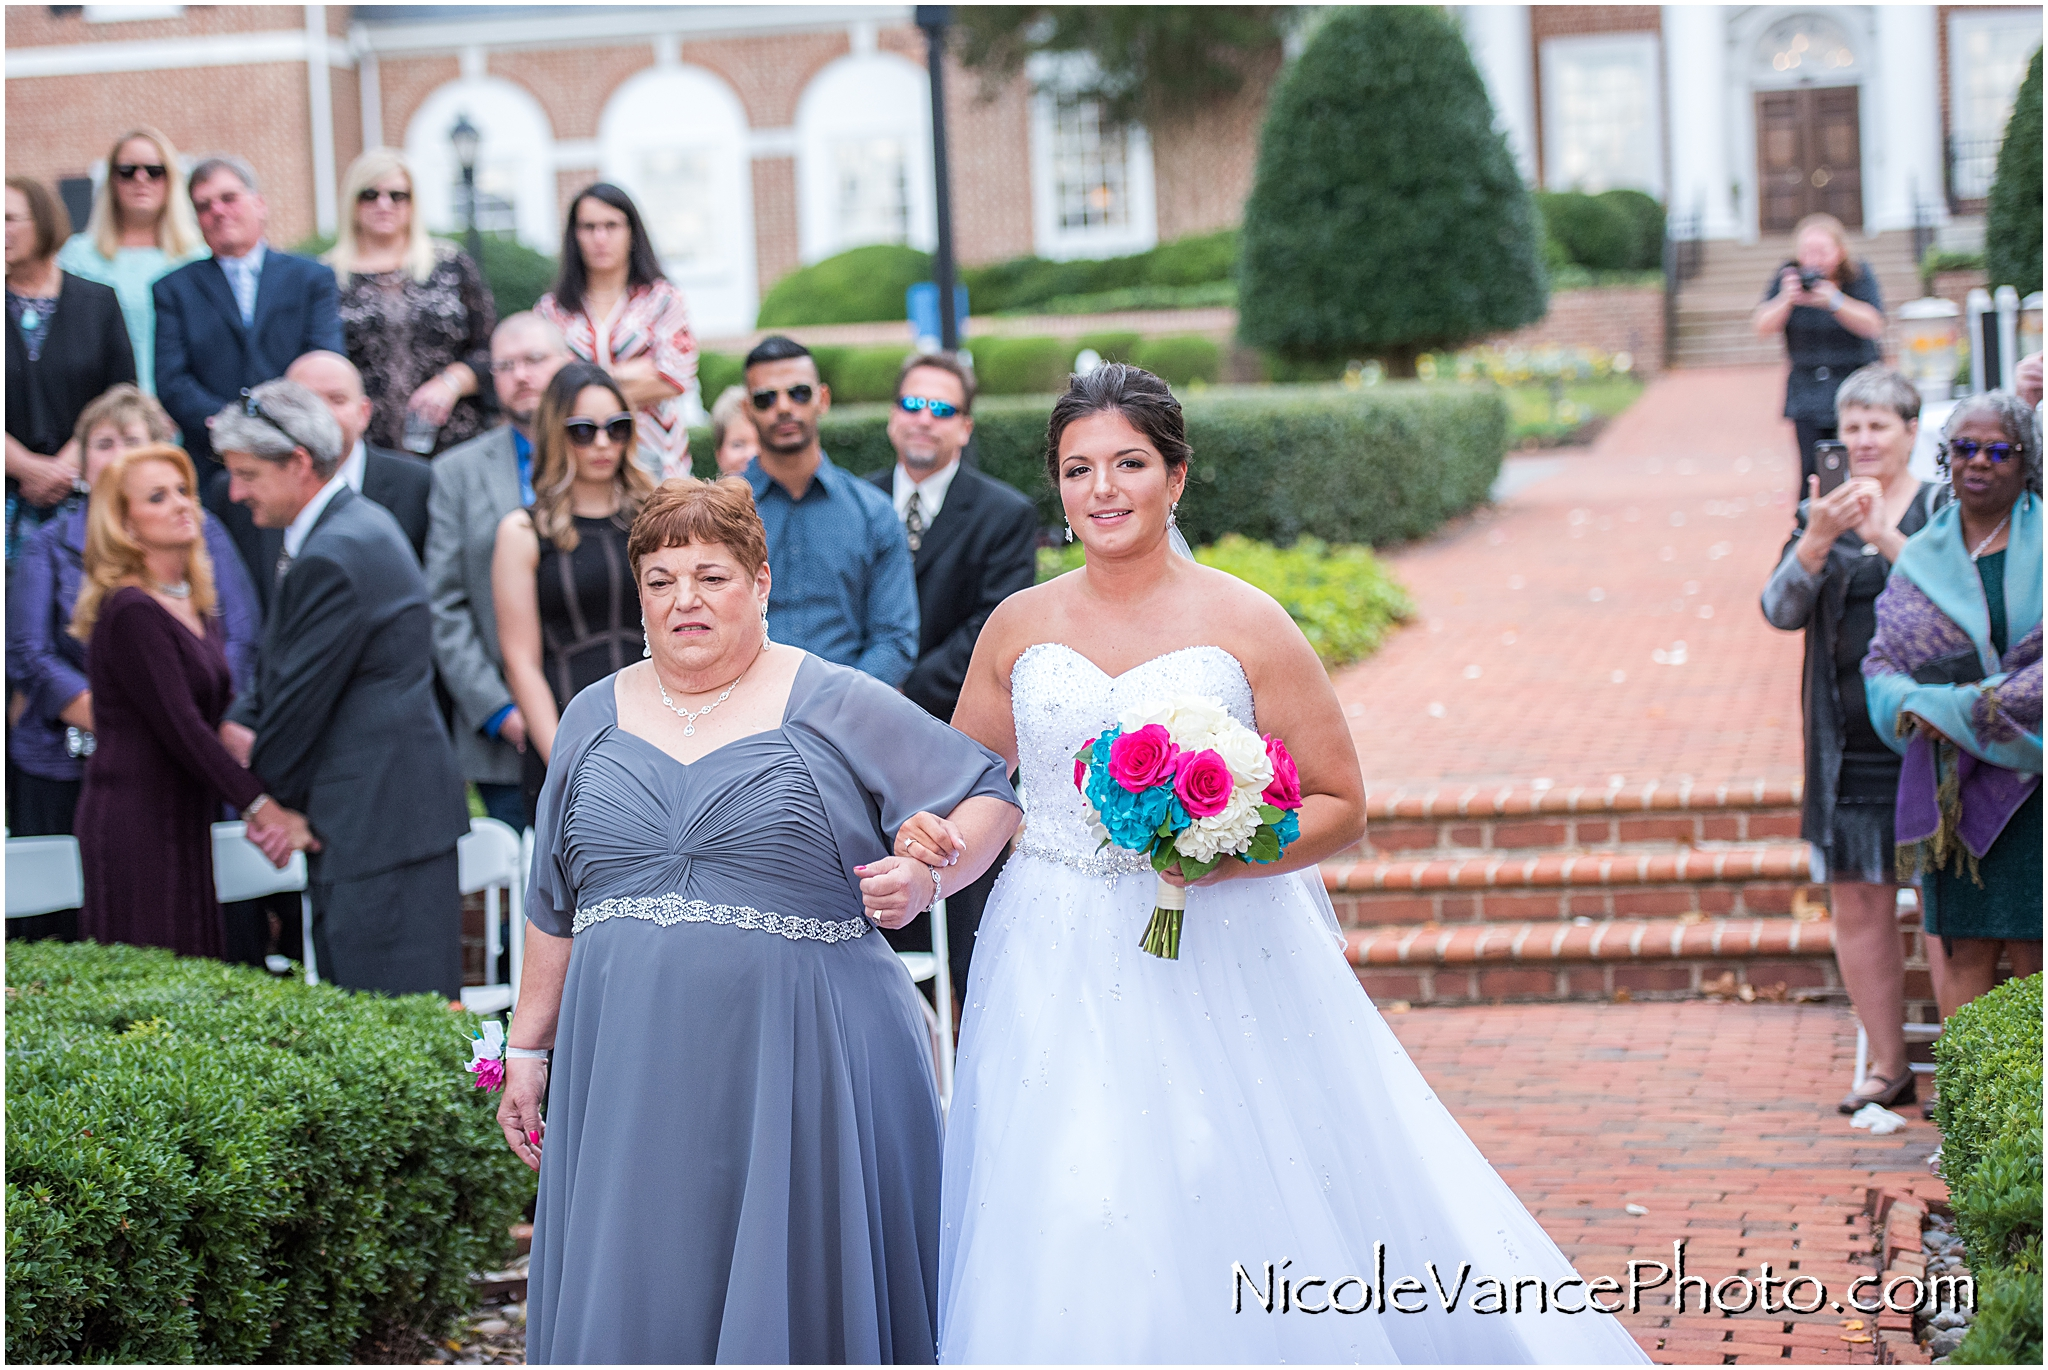 The bridal entrance at Virginia Crossings.